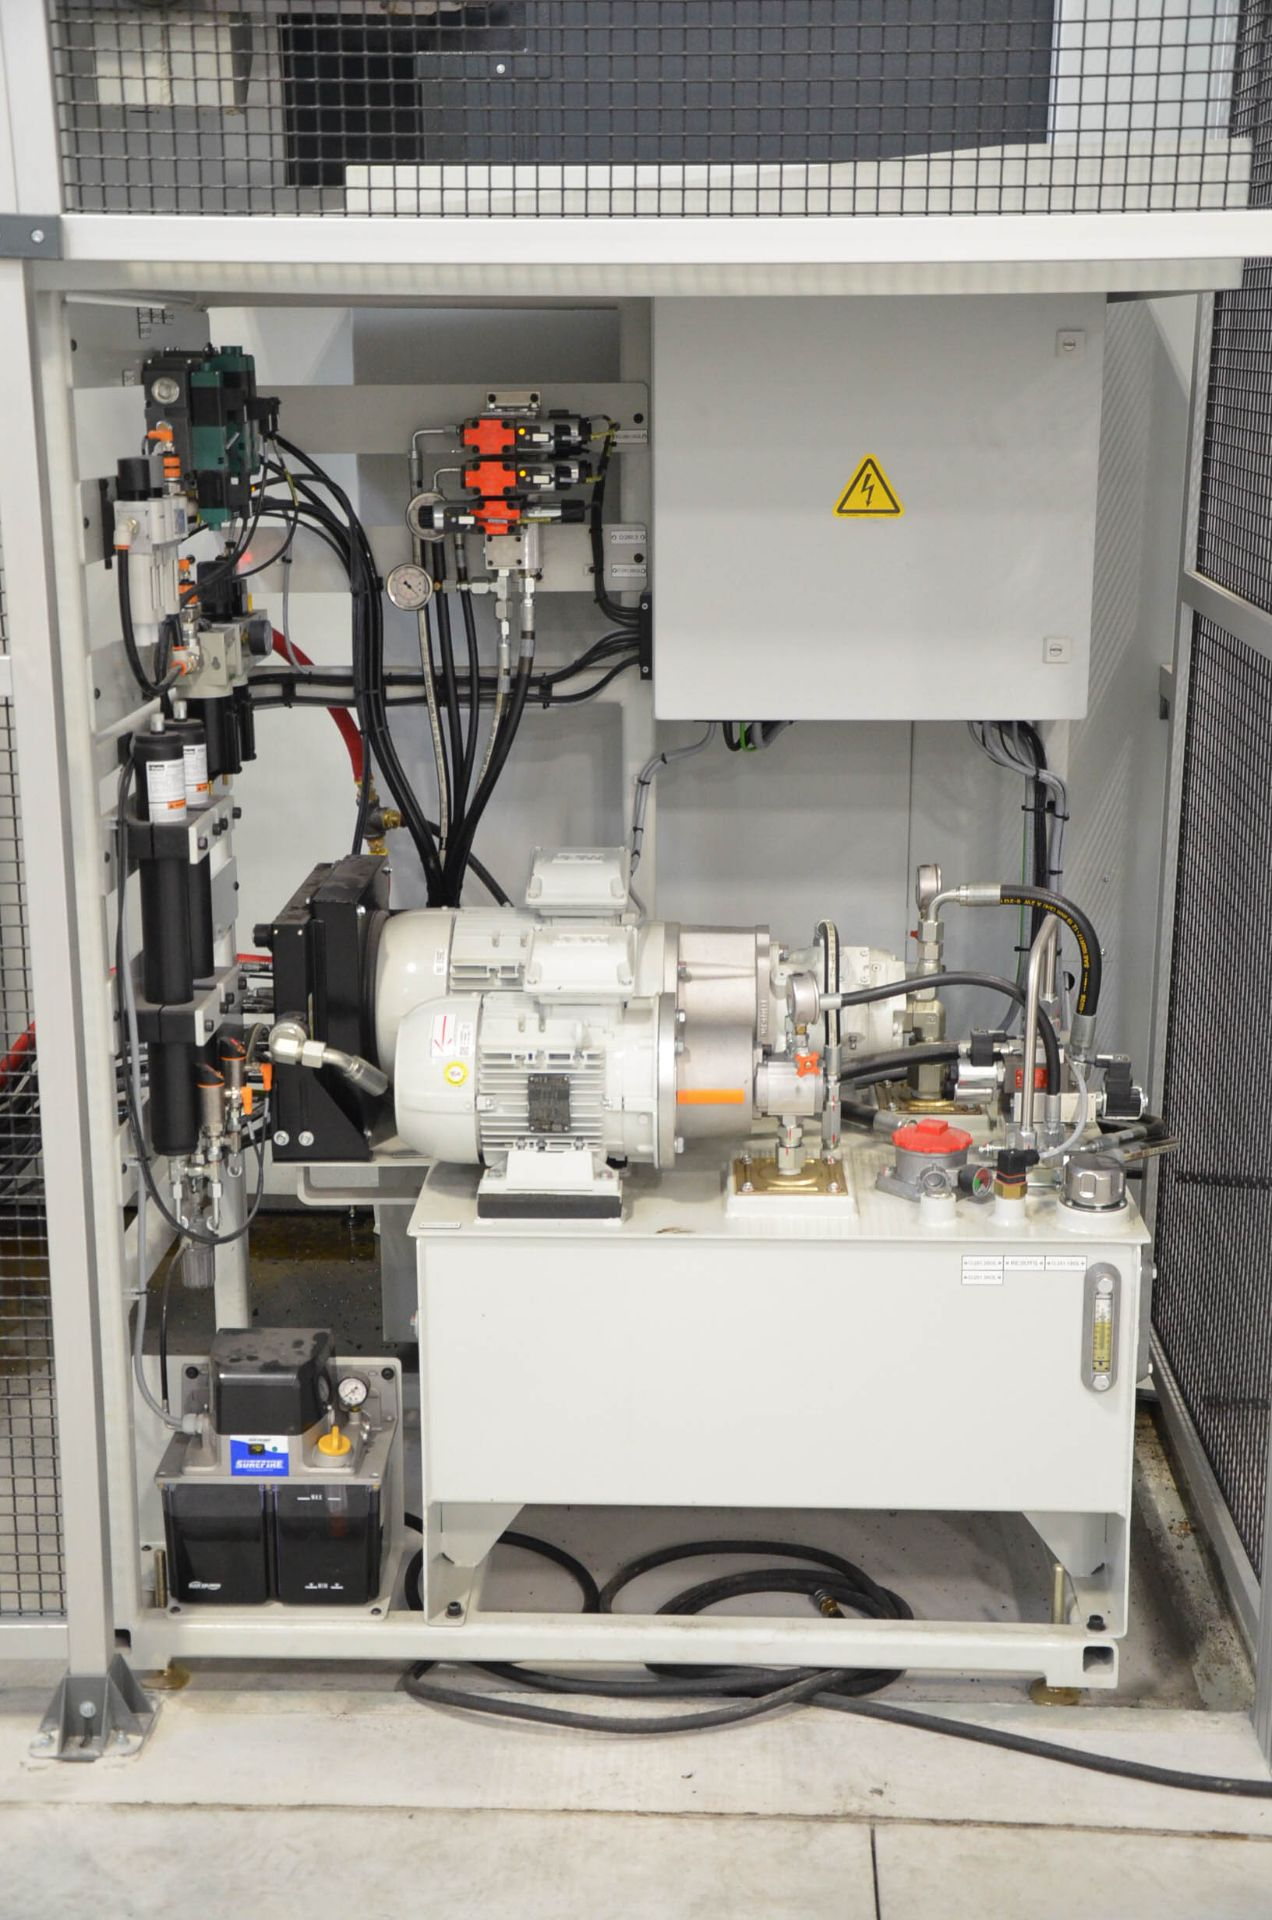 UNISIG (2020) USC-M38 5-AXIS COMBINATION CNC GUN DRILLING AND MILLING MACHINE WITH HEIDENHAIN ITNC - Image 12 of 17